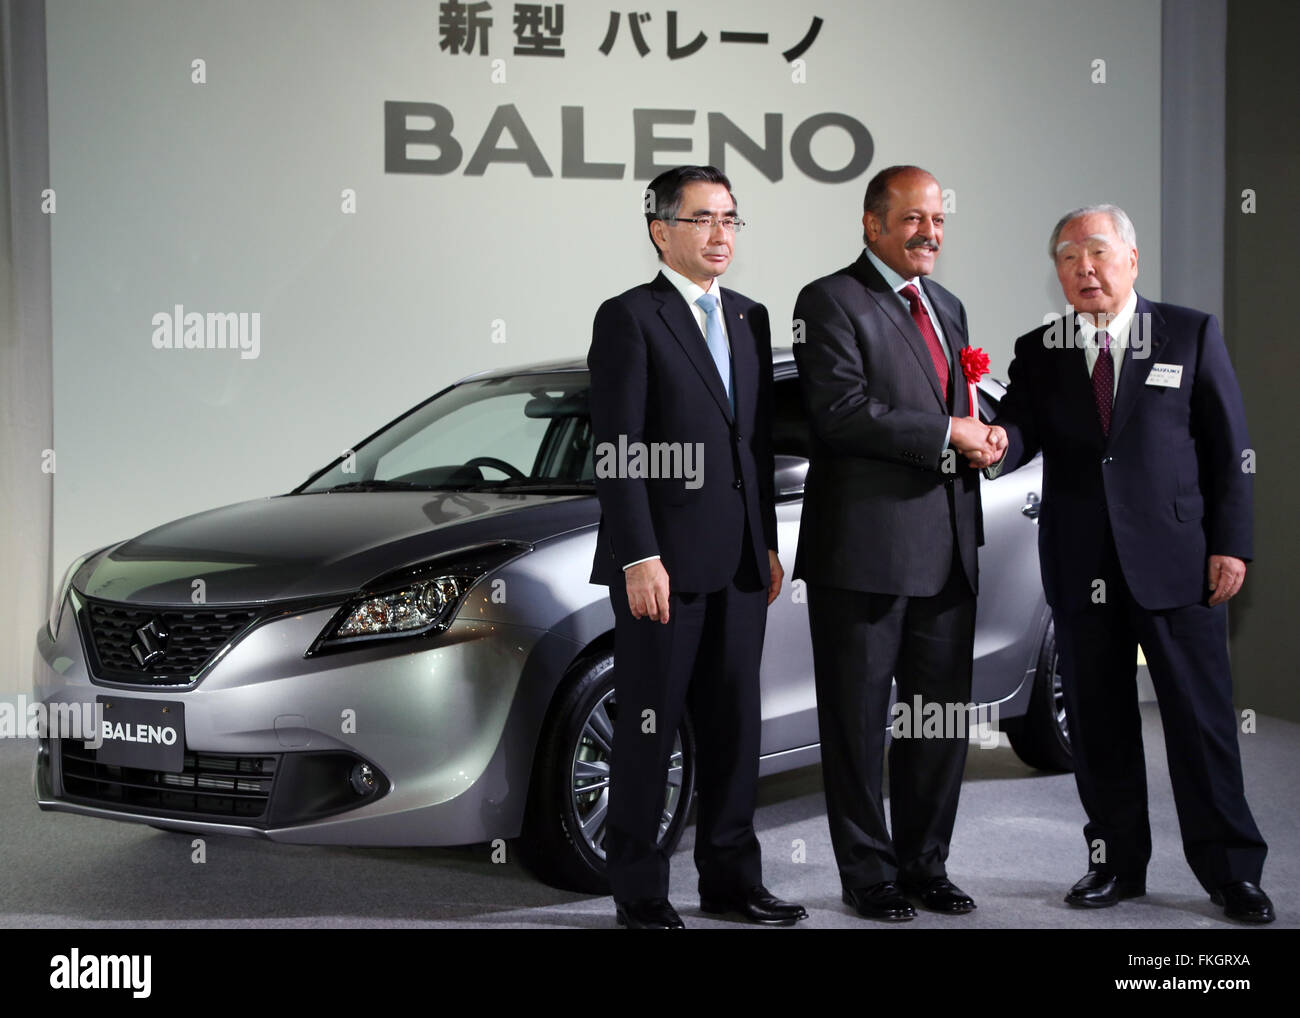 Tokyo, Japan. 9th Mar, 2016. Indian ambassador to Japan Sujan Chinoy (C) shakes hands with Japanese automaker Suzuki - Stock Image